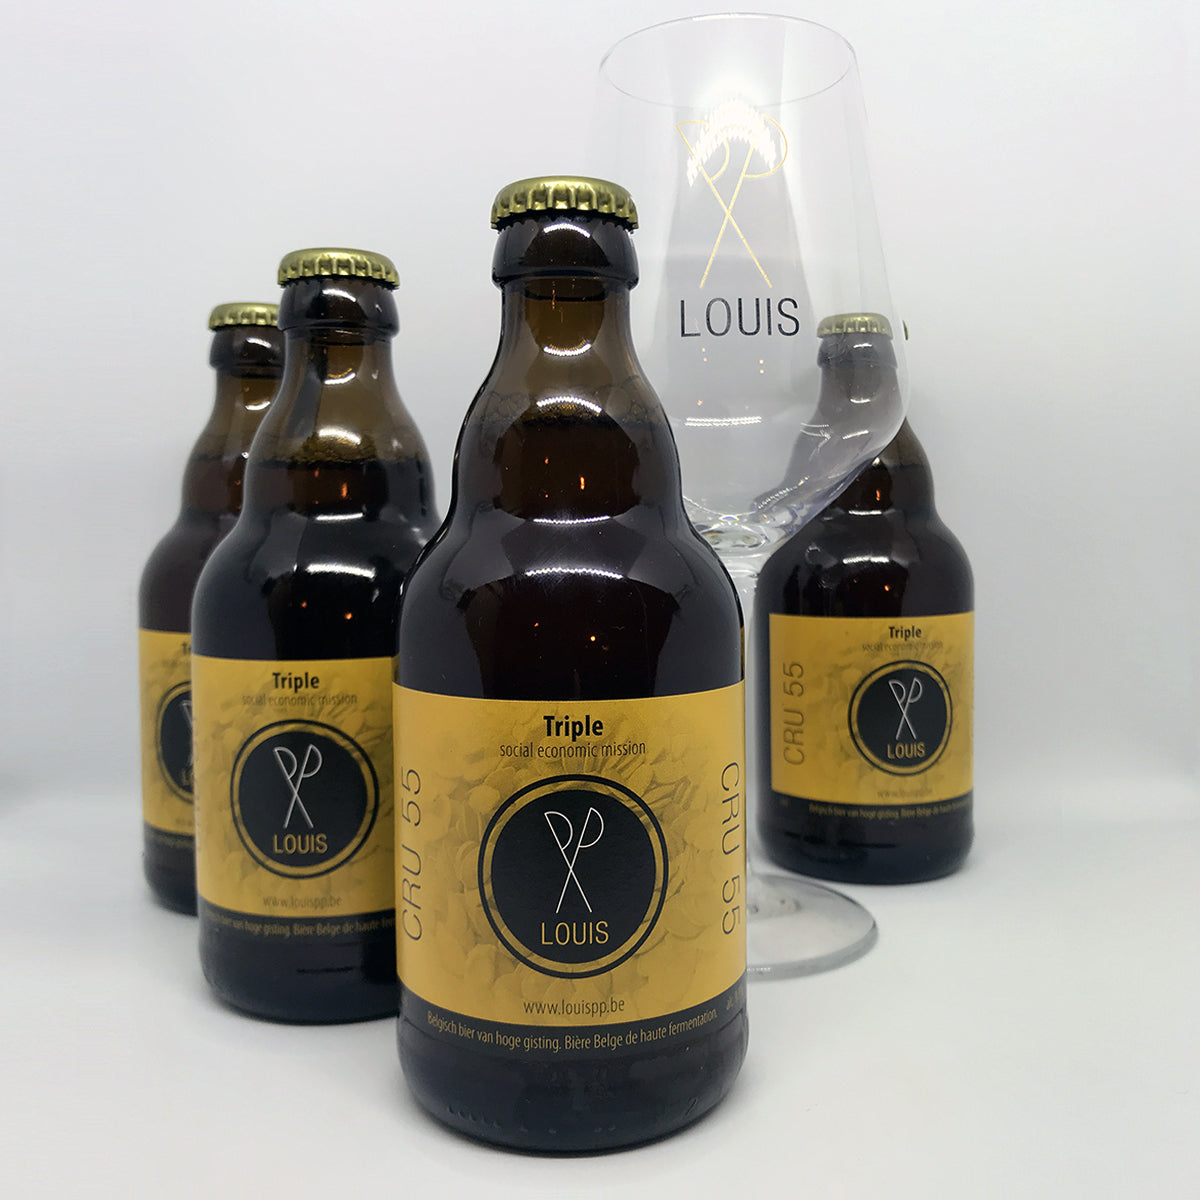 Louis pp 4x33cl + glas